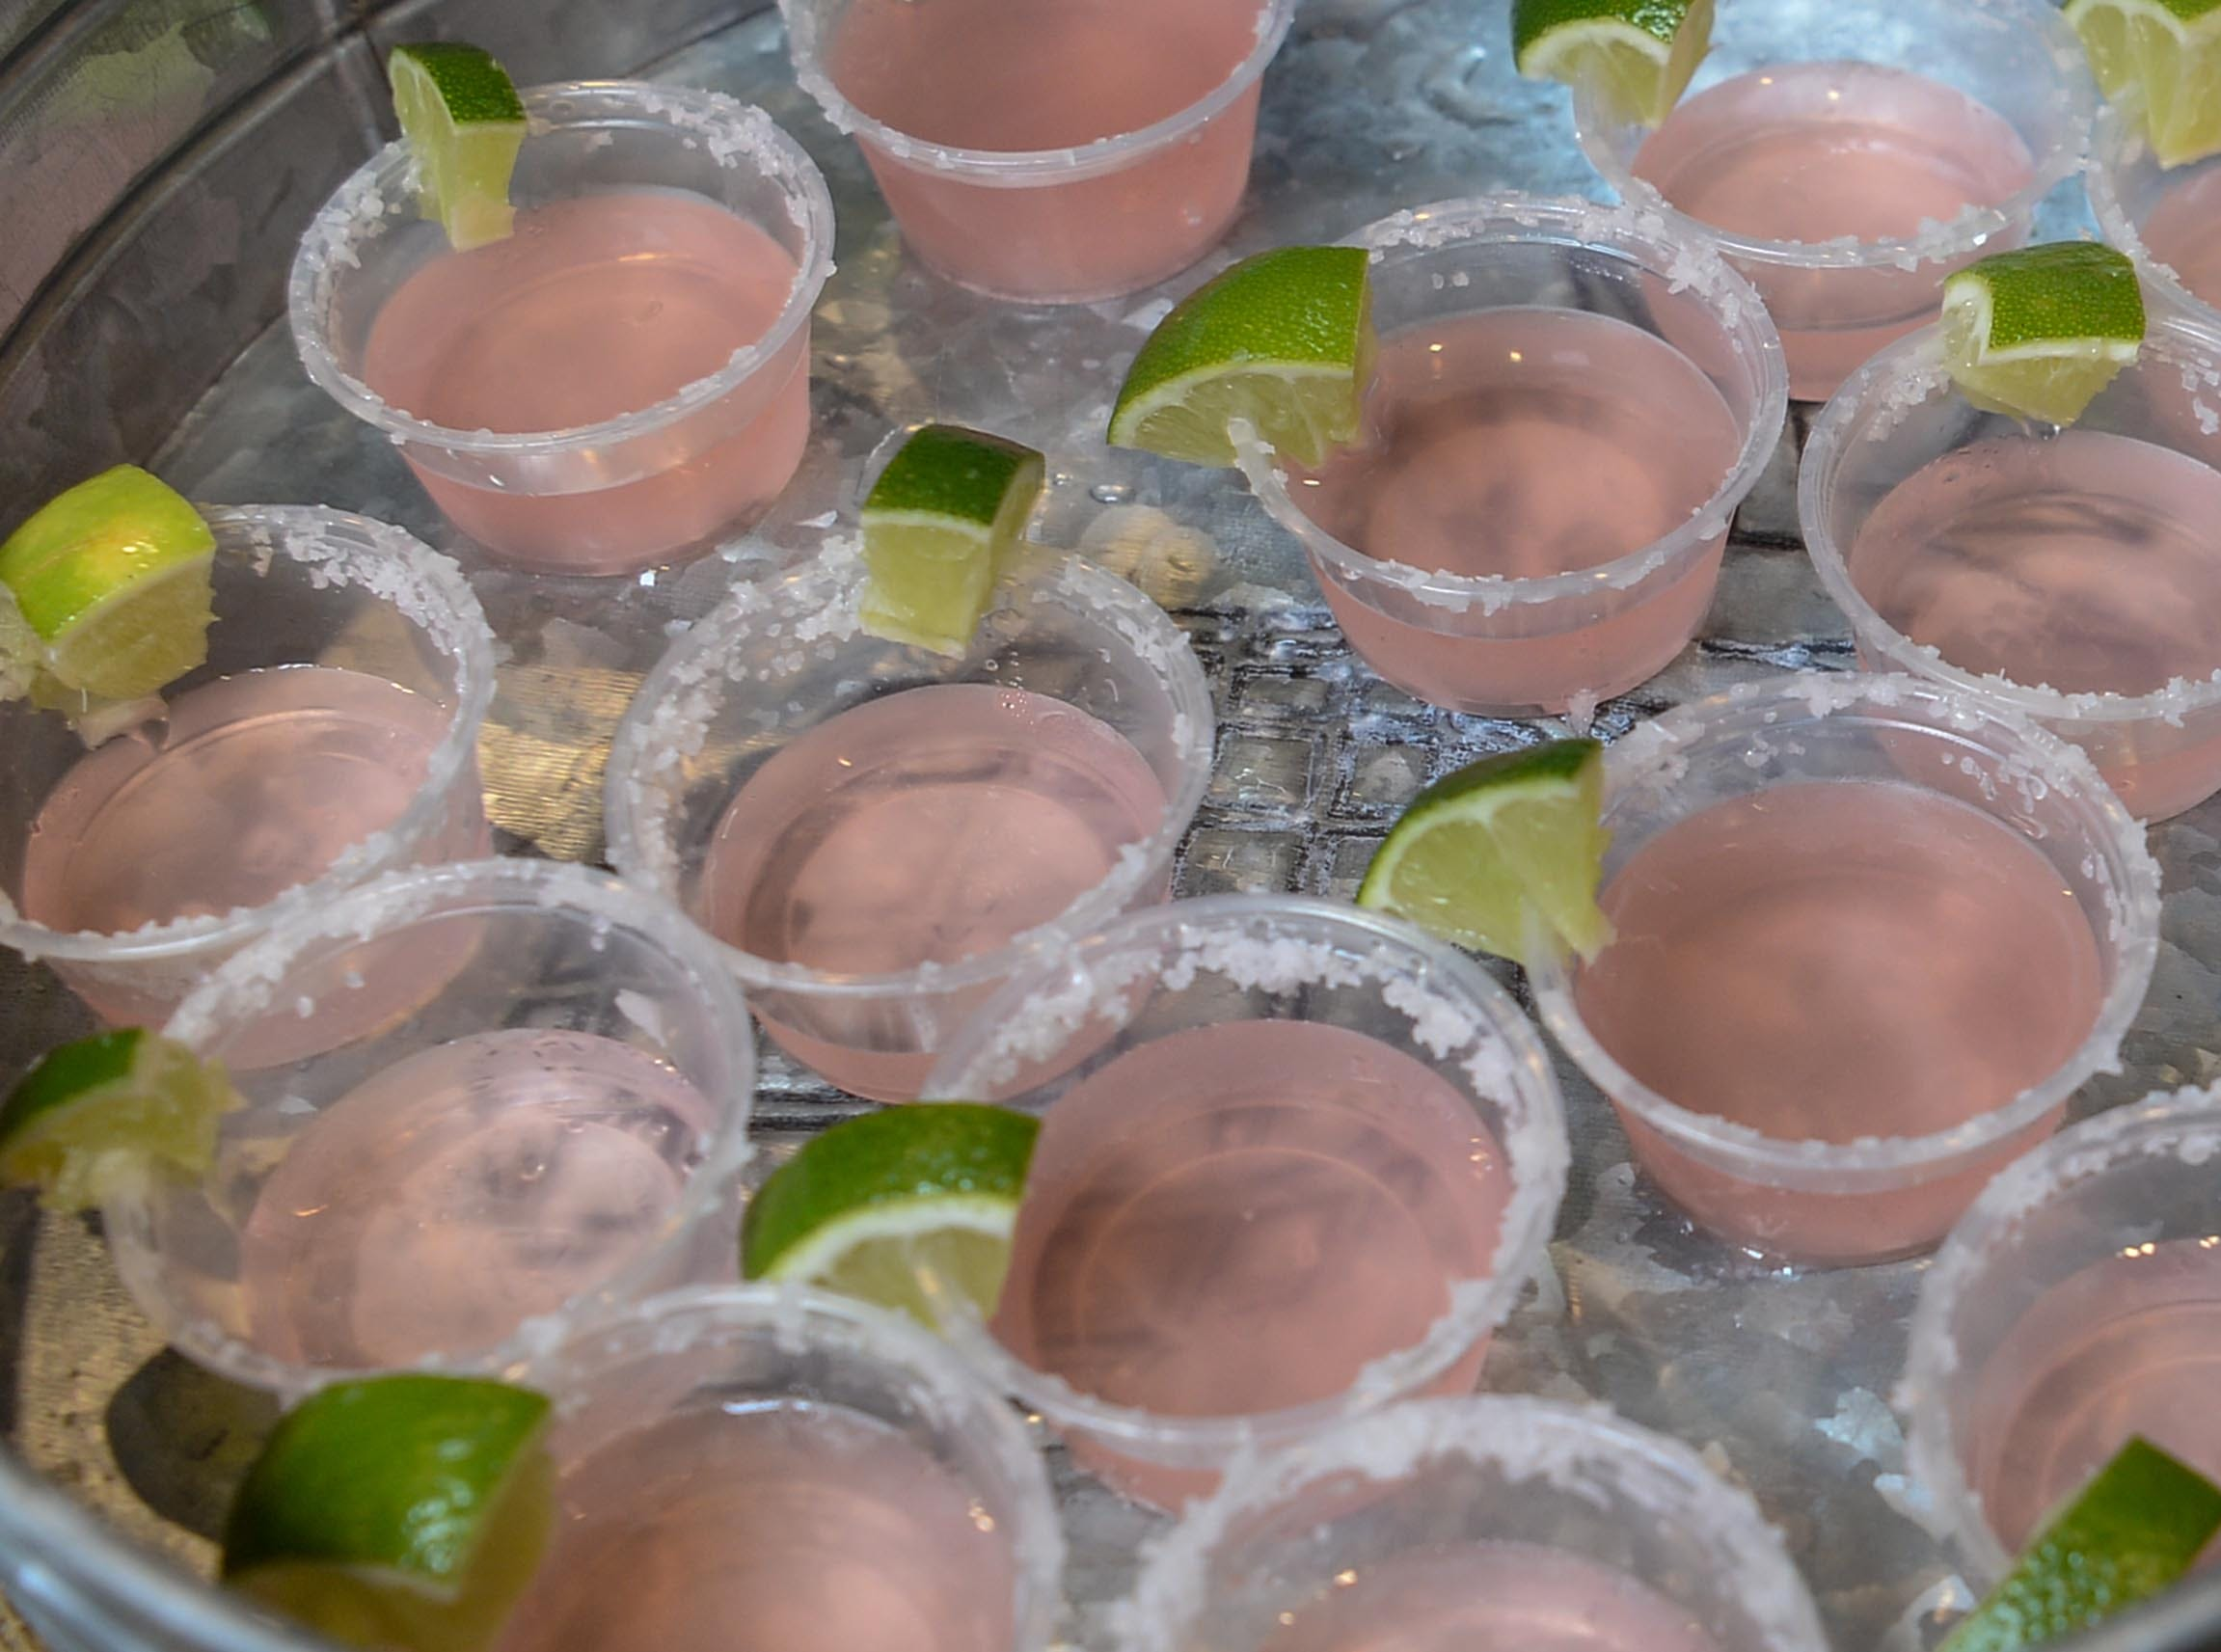 DT Taco of downtown Anderson made a watermelon margarita for the Anderson Area YMCA Ralph Hayes Toyota Taste of Anderson at The Bleckley Station Tuesday. Proceeds from the Aloha theme party benefit programs and services of the Anderson Area YMCA.